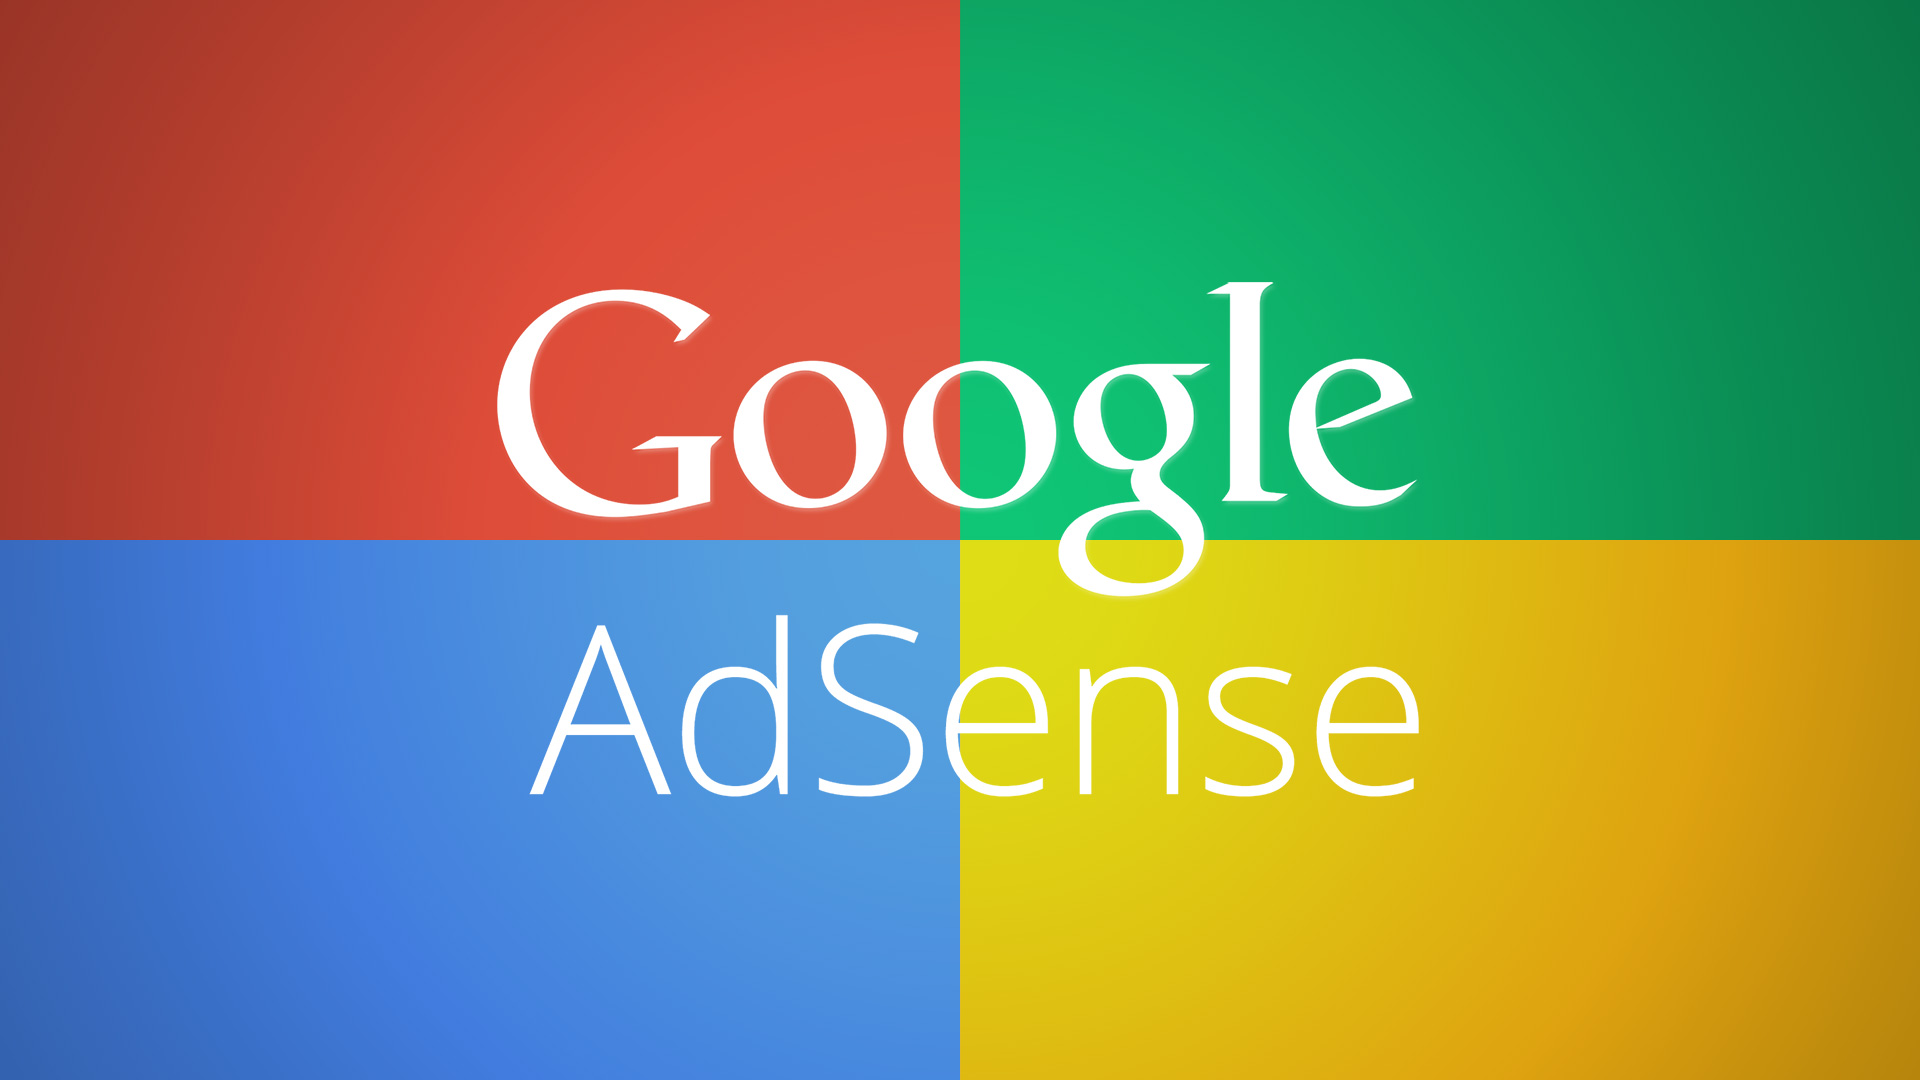 How to Open Adsense Ads in a New Window